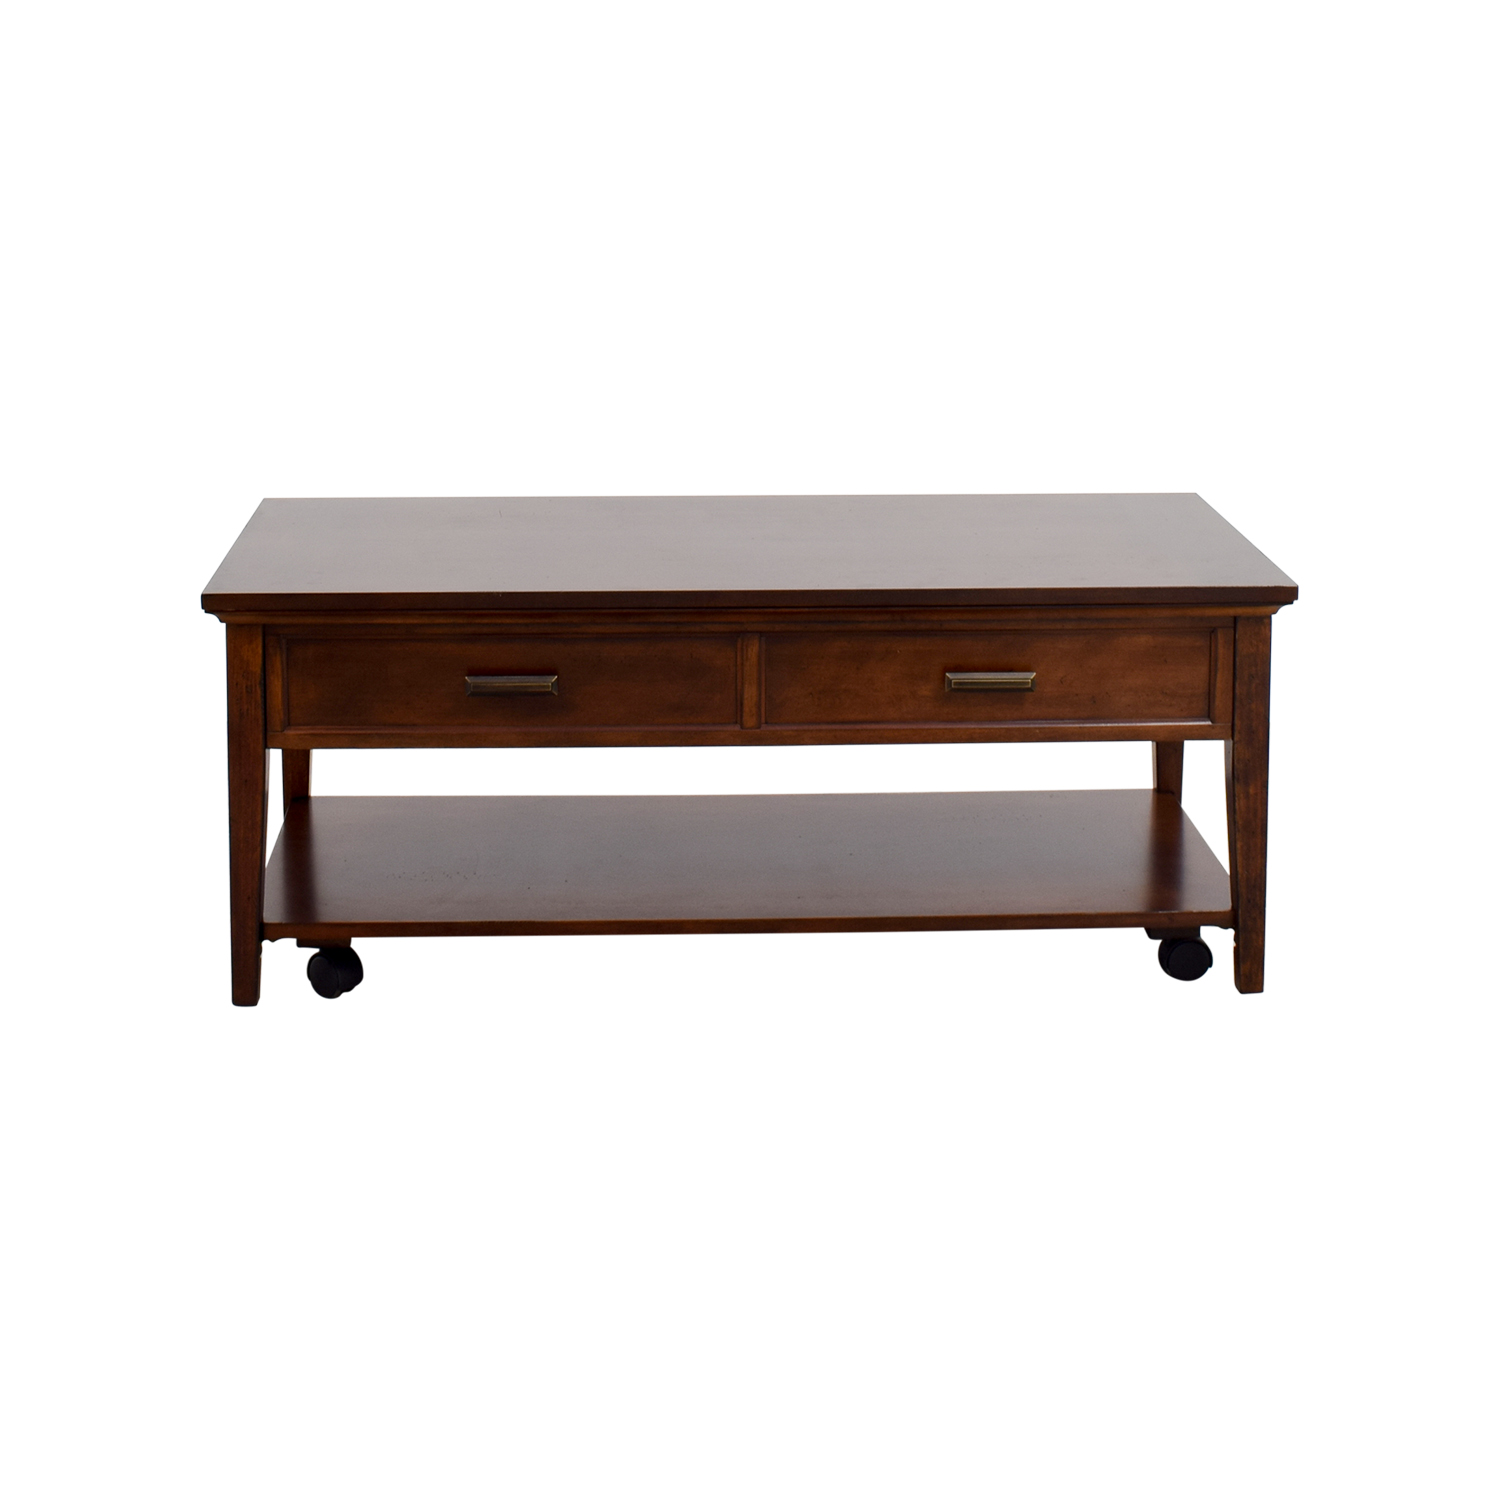 Raymour & Flanigan Harbour Bay Lift-top Coffee Table sale